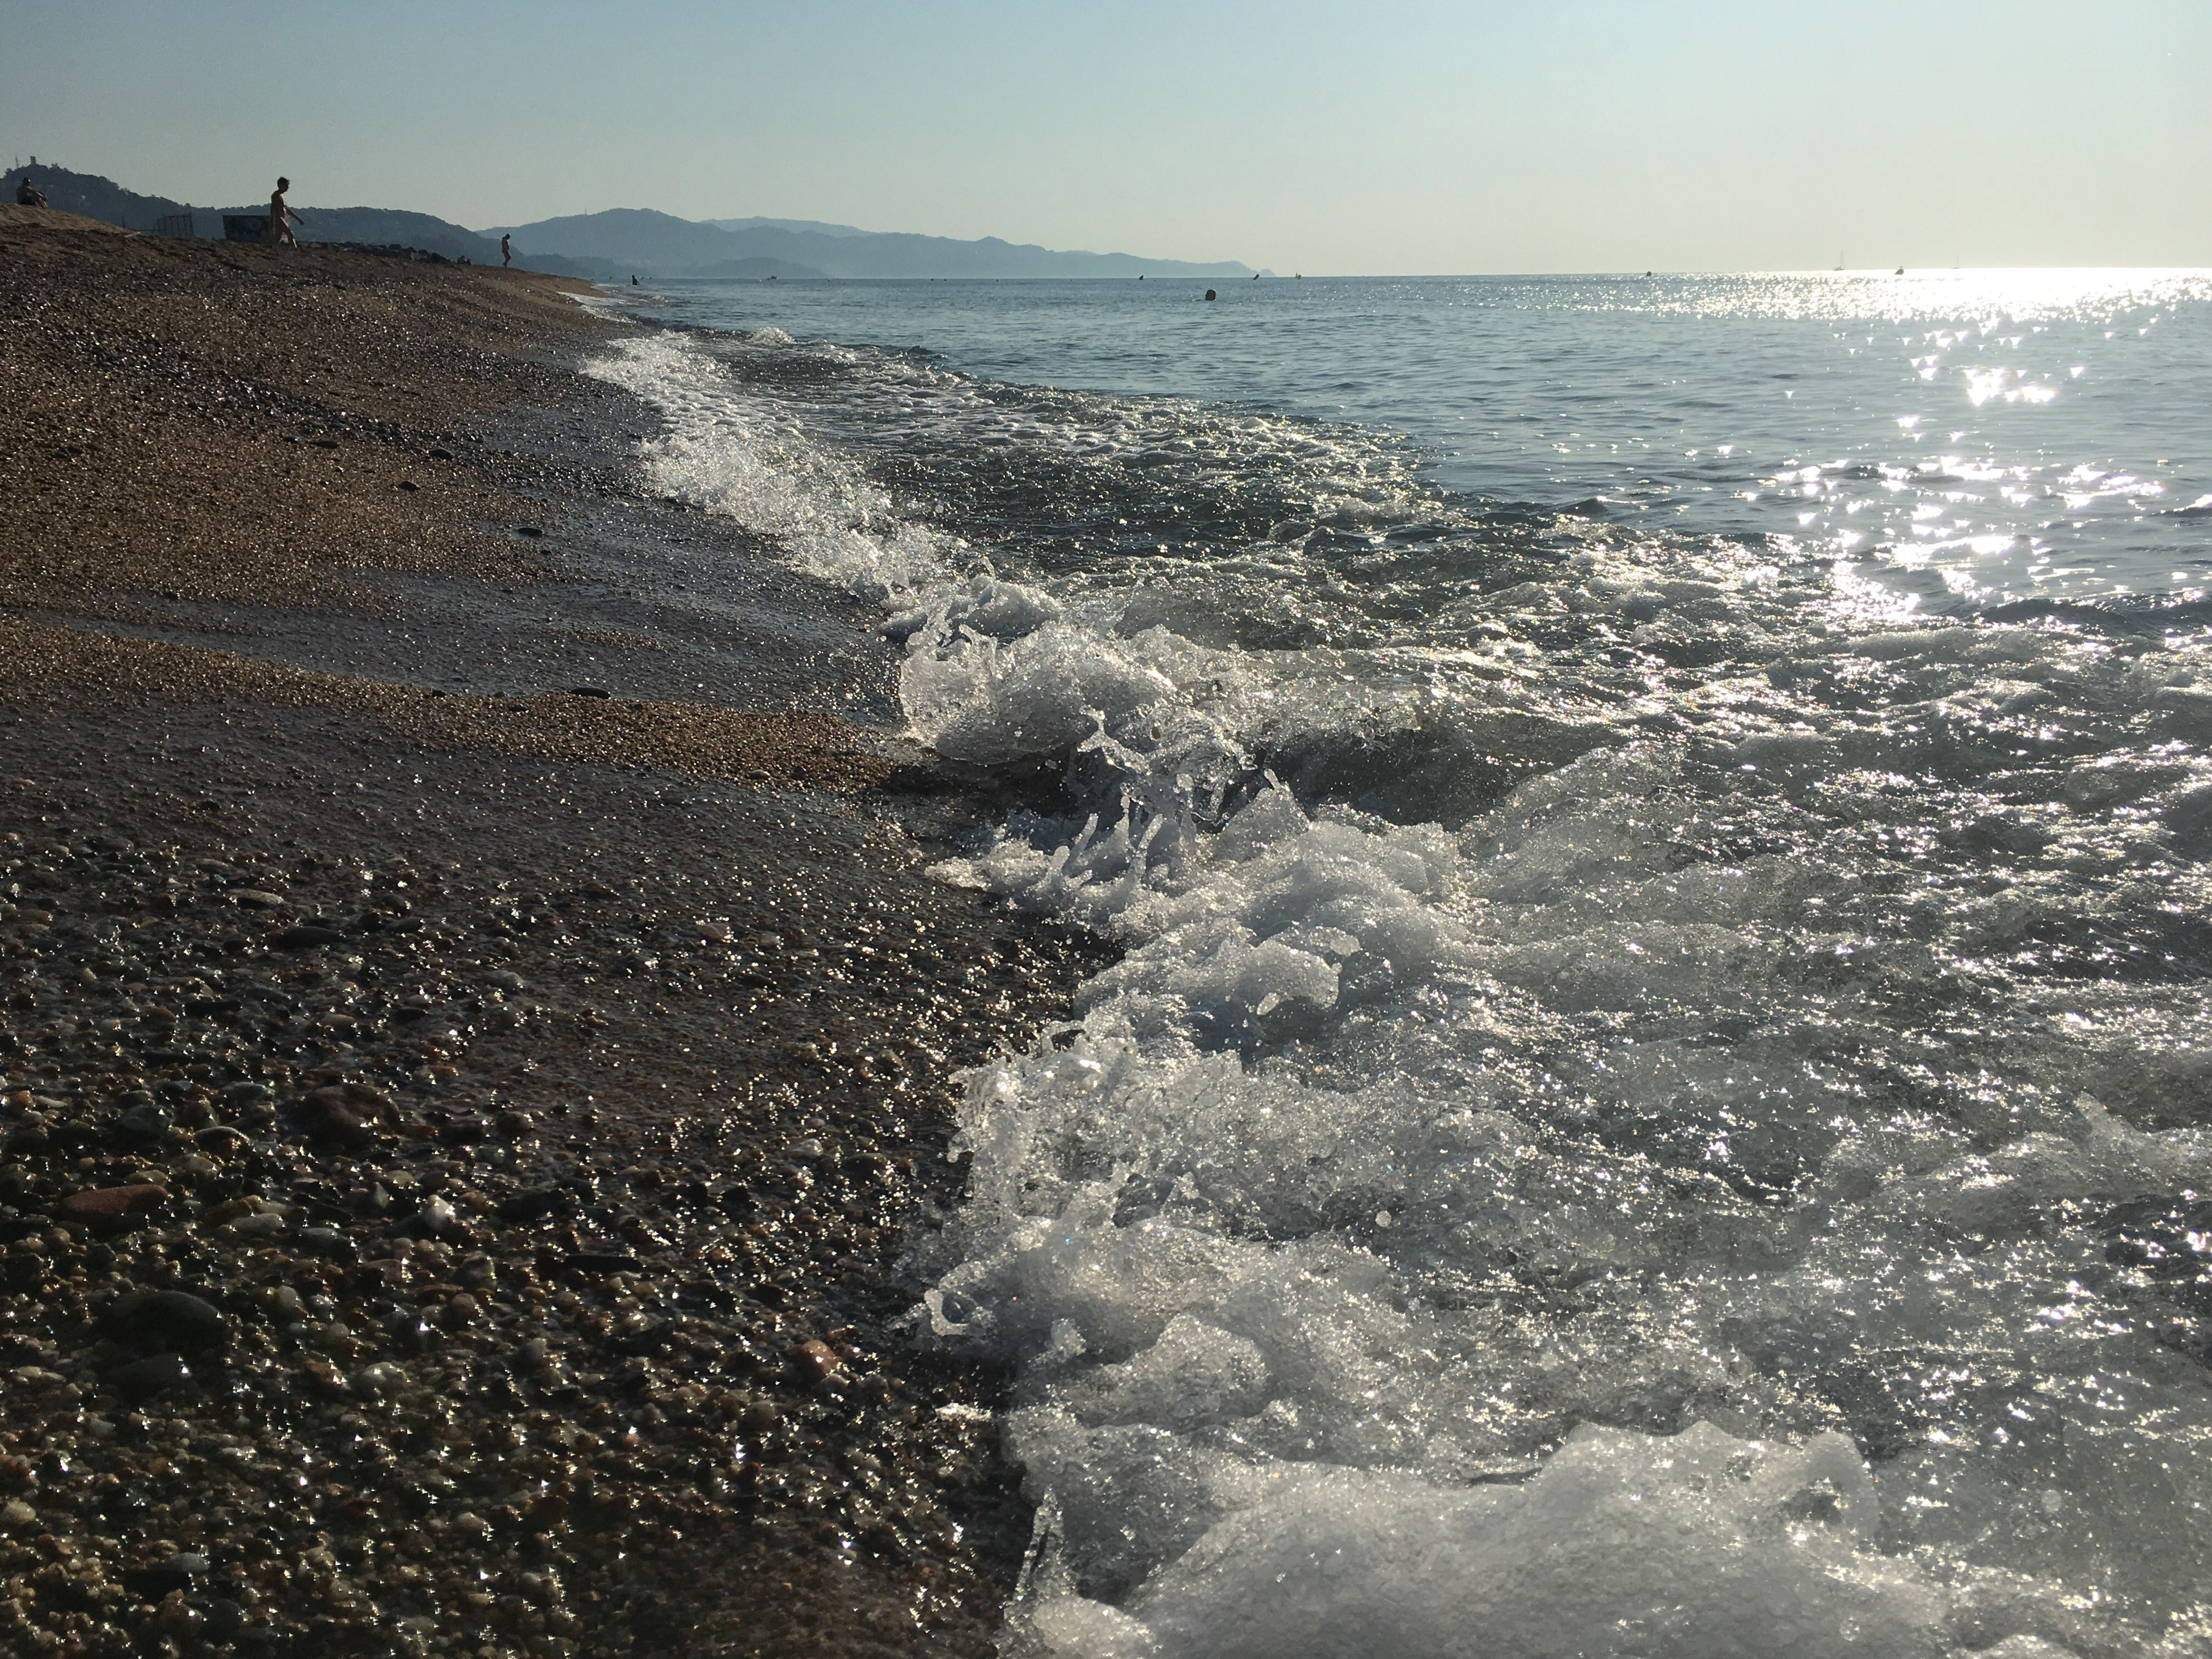 water, sea, horizon over water, wave, scenics, beauty in nature, shore, nature, splashing, tranquility, tranquil scene, motion, sunlight, idyllic, sky, outdoors, day, remote, rippled, non-urban scene, blue, ocean, sunny